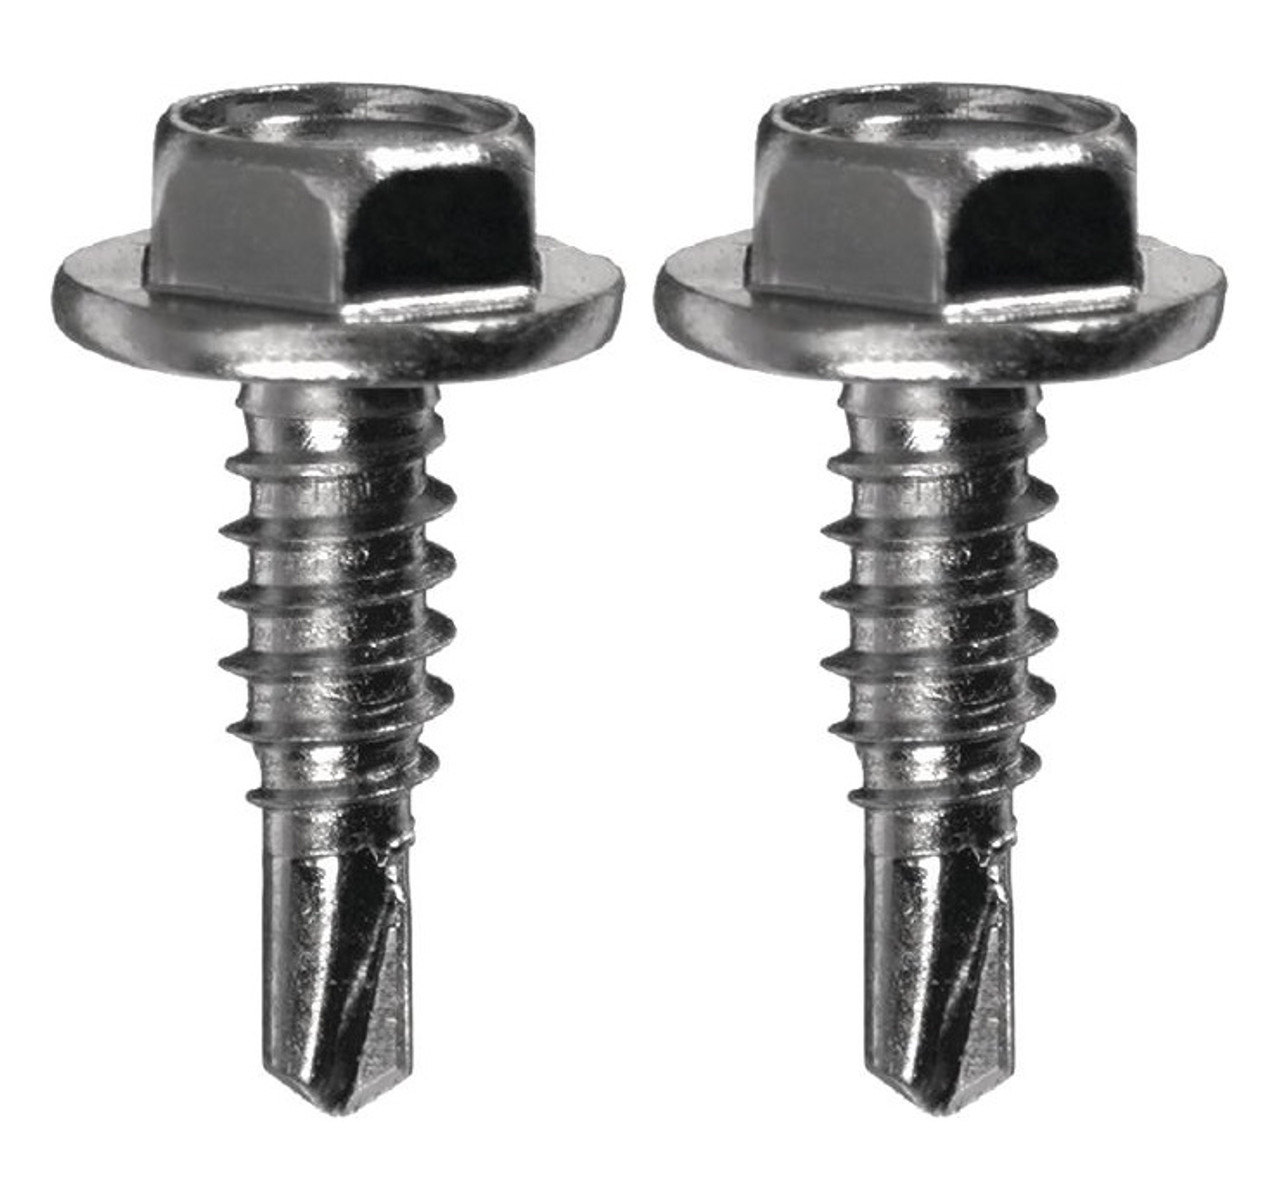 S9415260 -DIMMER SWITCH MOUNTING SCREW SET